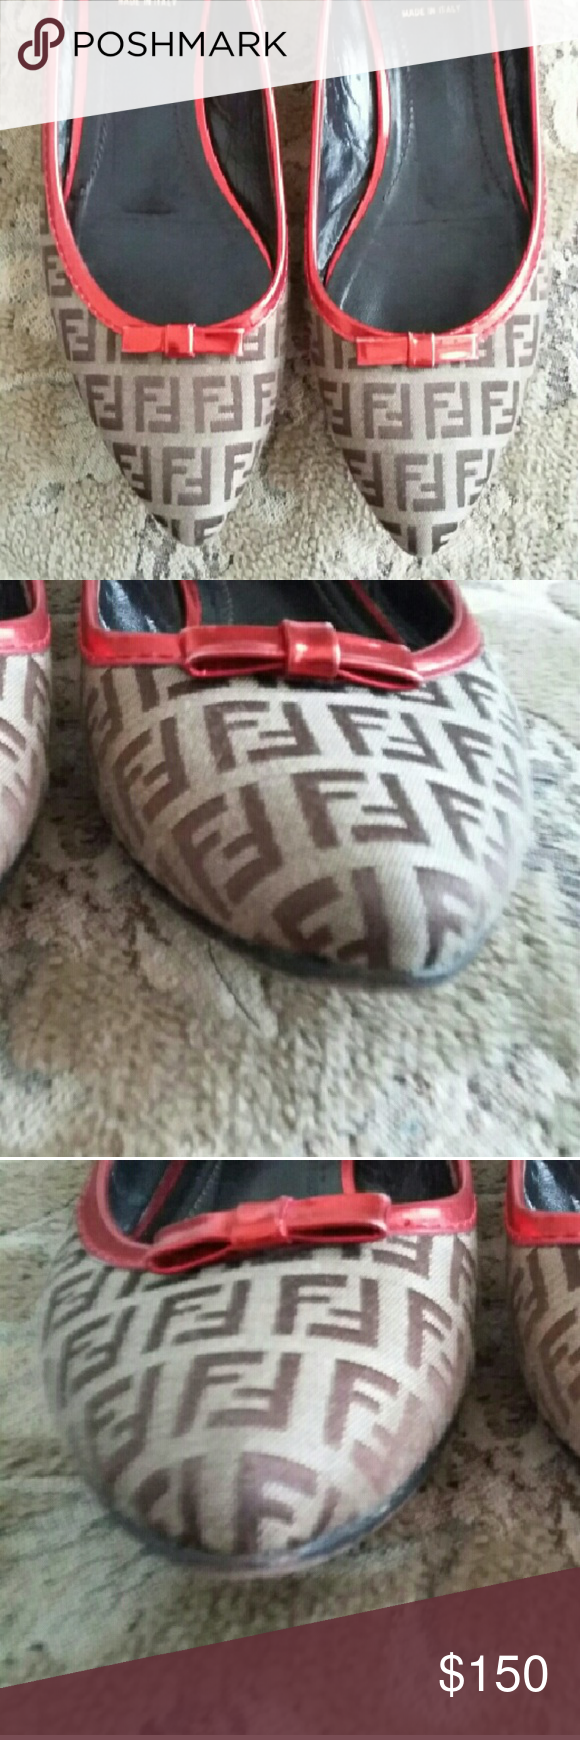 39.5 Fendi Logo Flats w/ Red Patent Trim and Bow Very Good codition. Only visible wear on soles. Selling because they fit more like a 9 than 9.5 Fendi Shoes Flats & Loafers